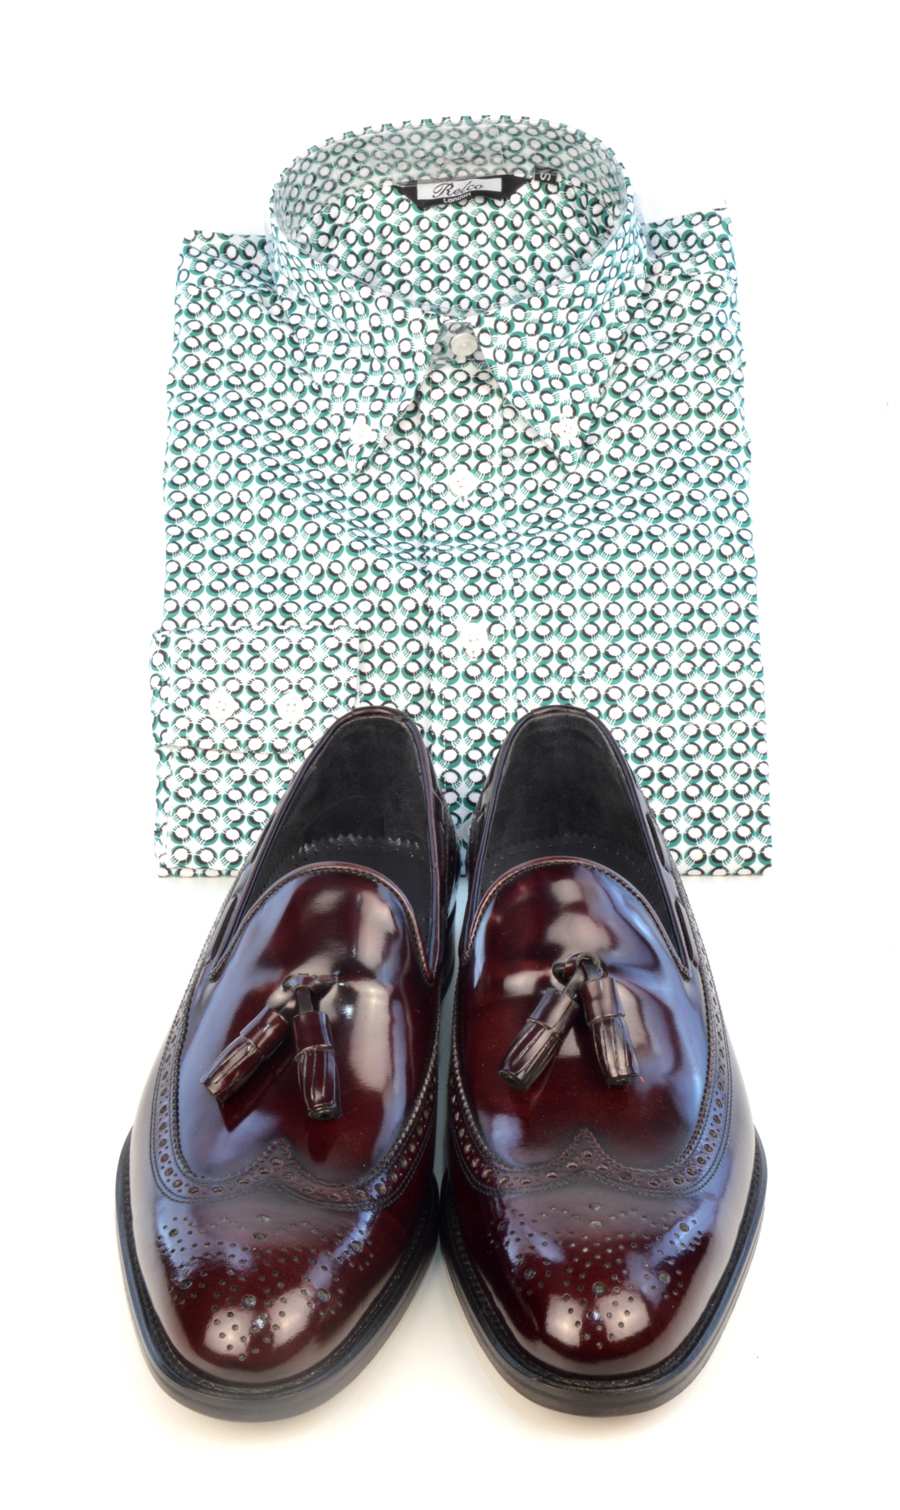 modshoes-oxblood-loafers-with-green-pattern-shirt